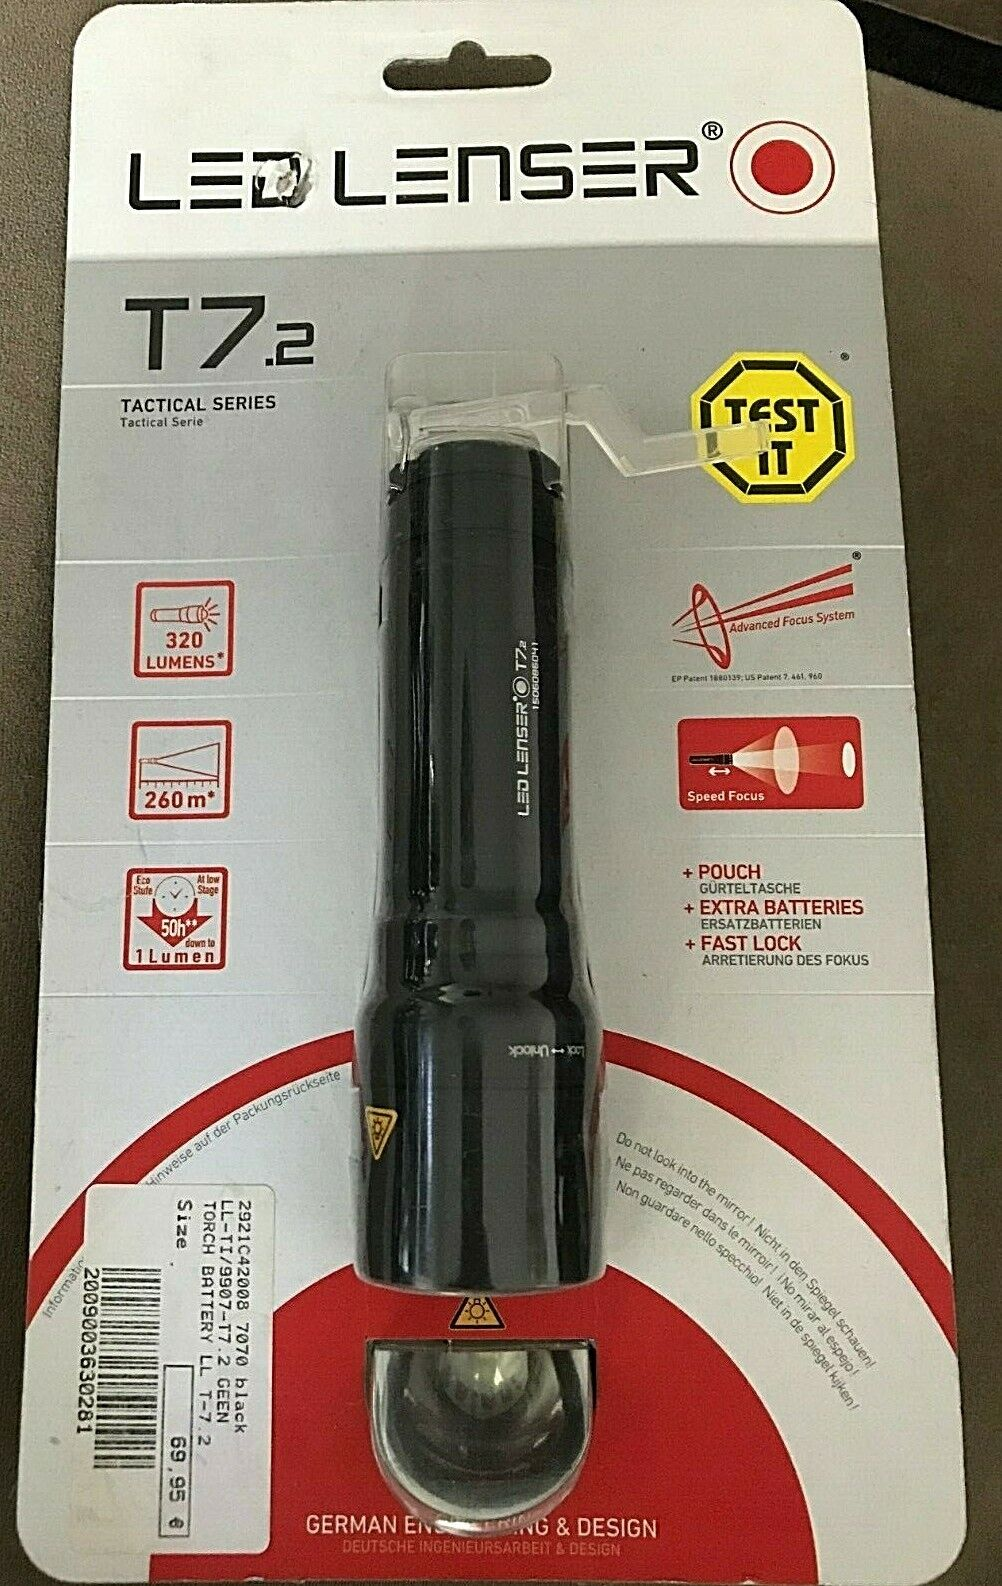 Led Lenser T7.2 + pouch + extra batteries + fast lock